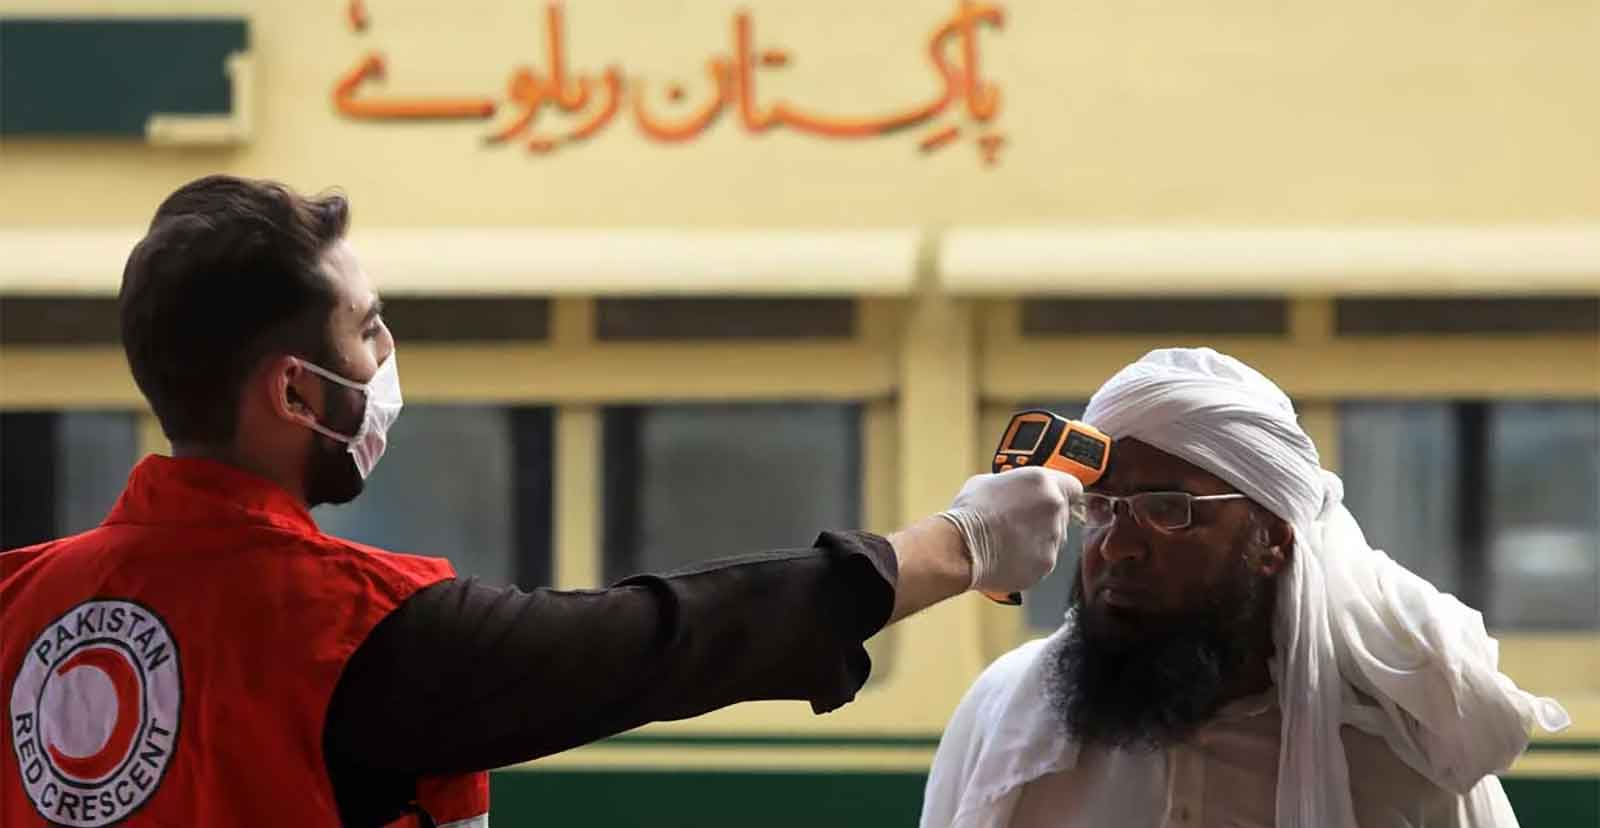 A Pakistan Red Crescent worker checks a man for his temperature using a thermal gun. Photo: AFP